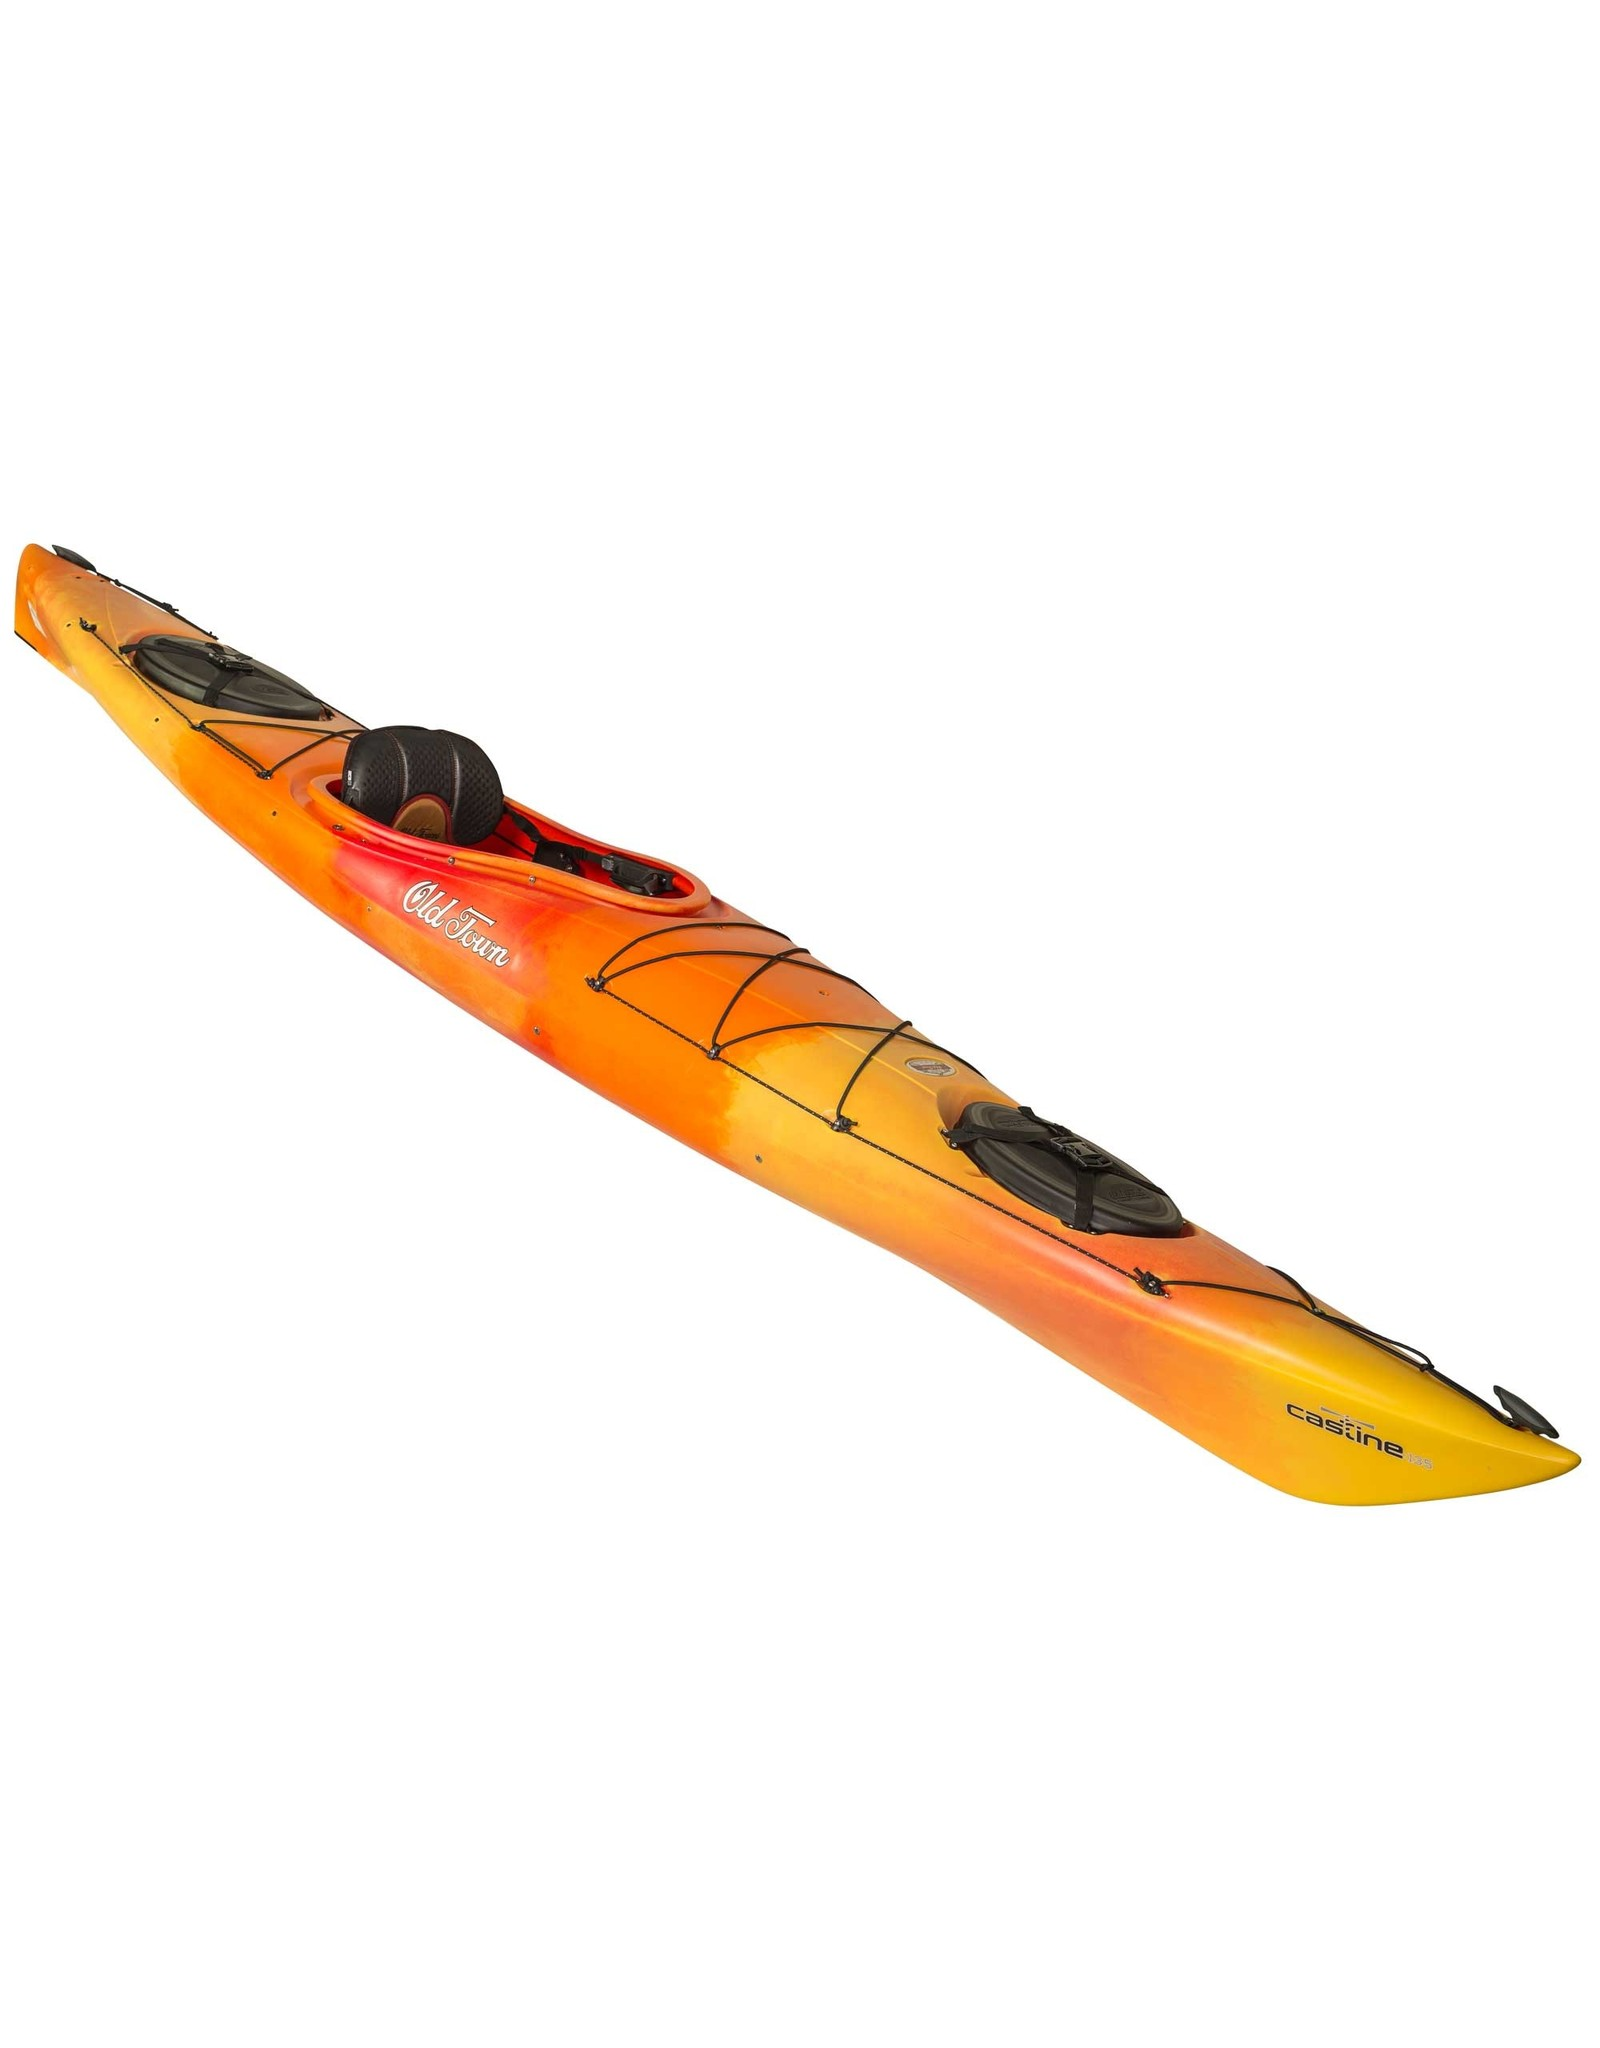 Old Town Old Town kayak Castine (2021)